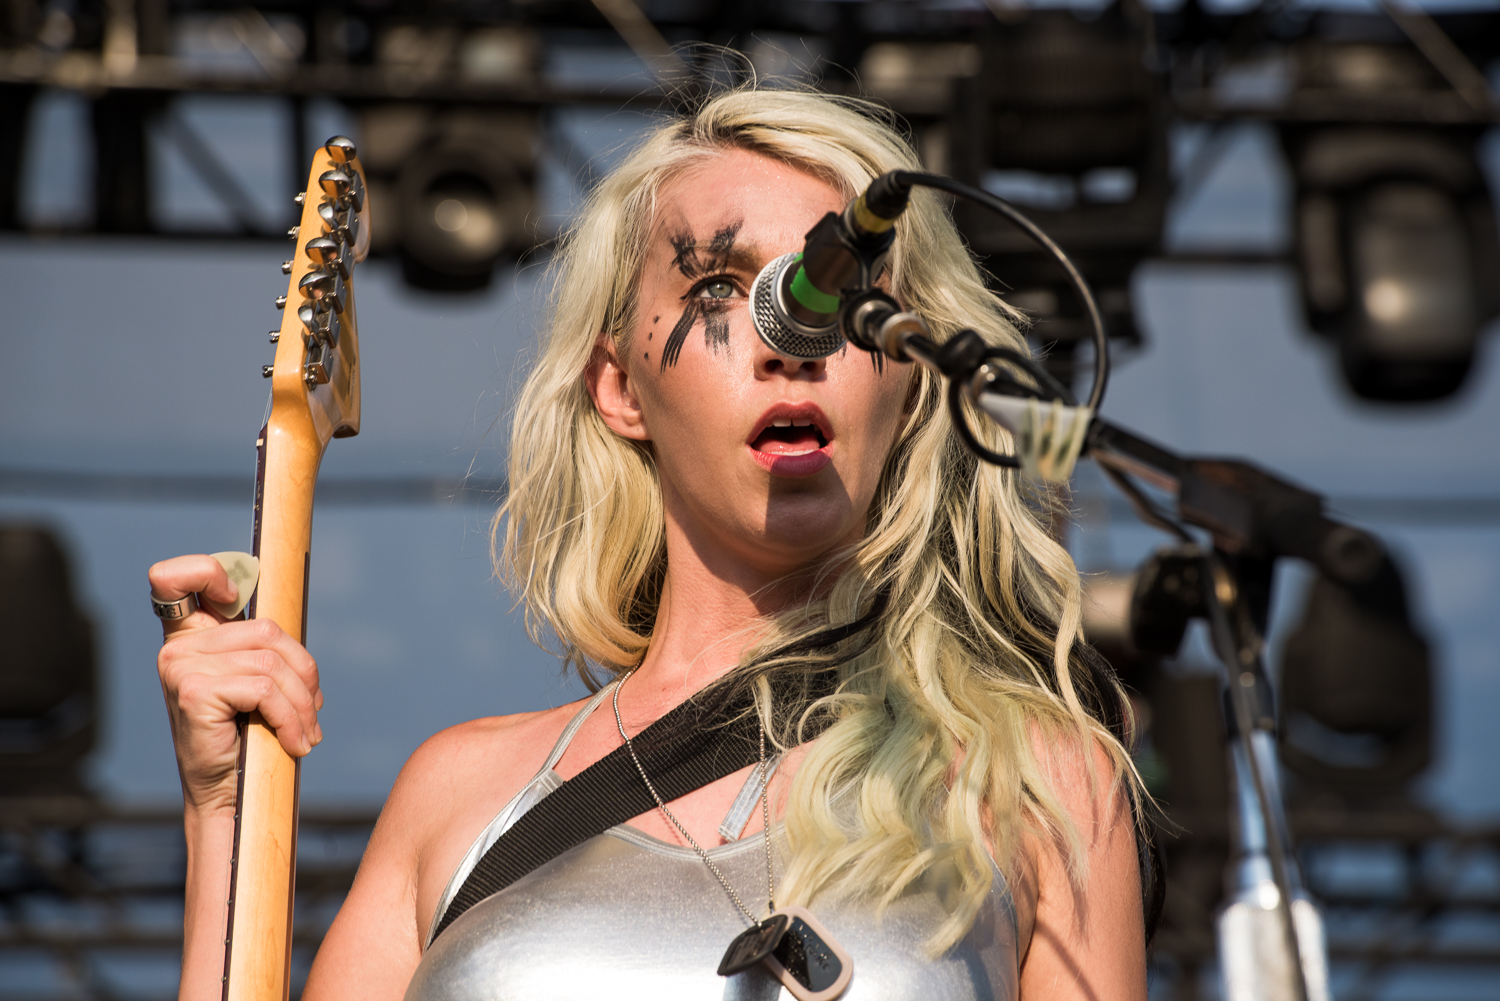 The Dead Deads, Summer Music Festival  Musikfest, August 2016 in Bethlehem, Pennsylvania.  Sands Steel Stage.